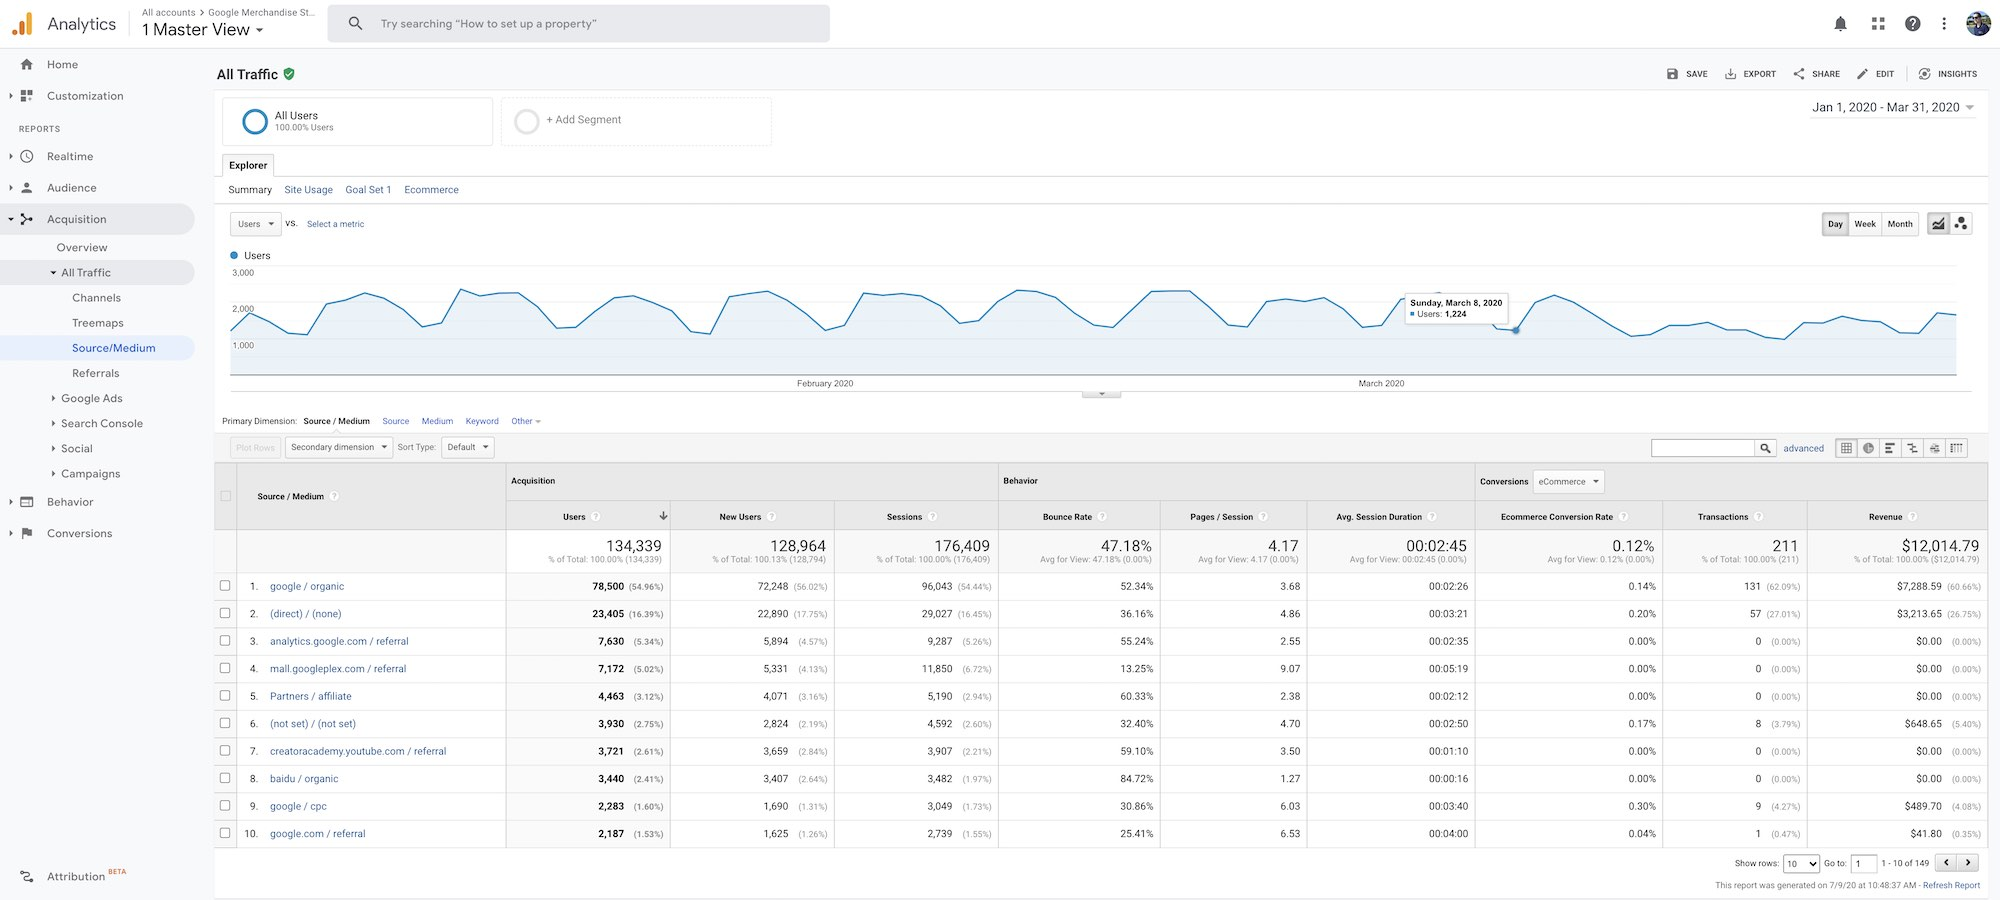 Google Analytics - Source Medium view